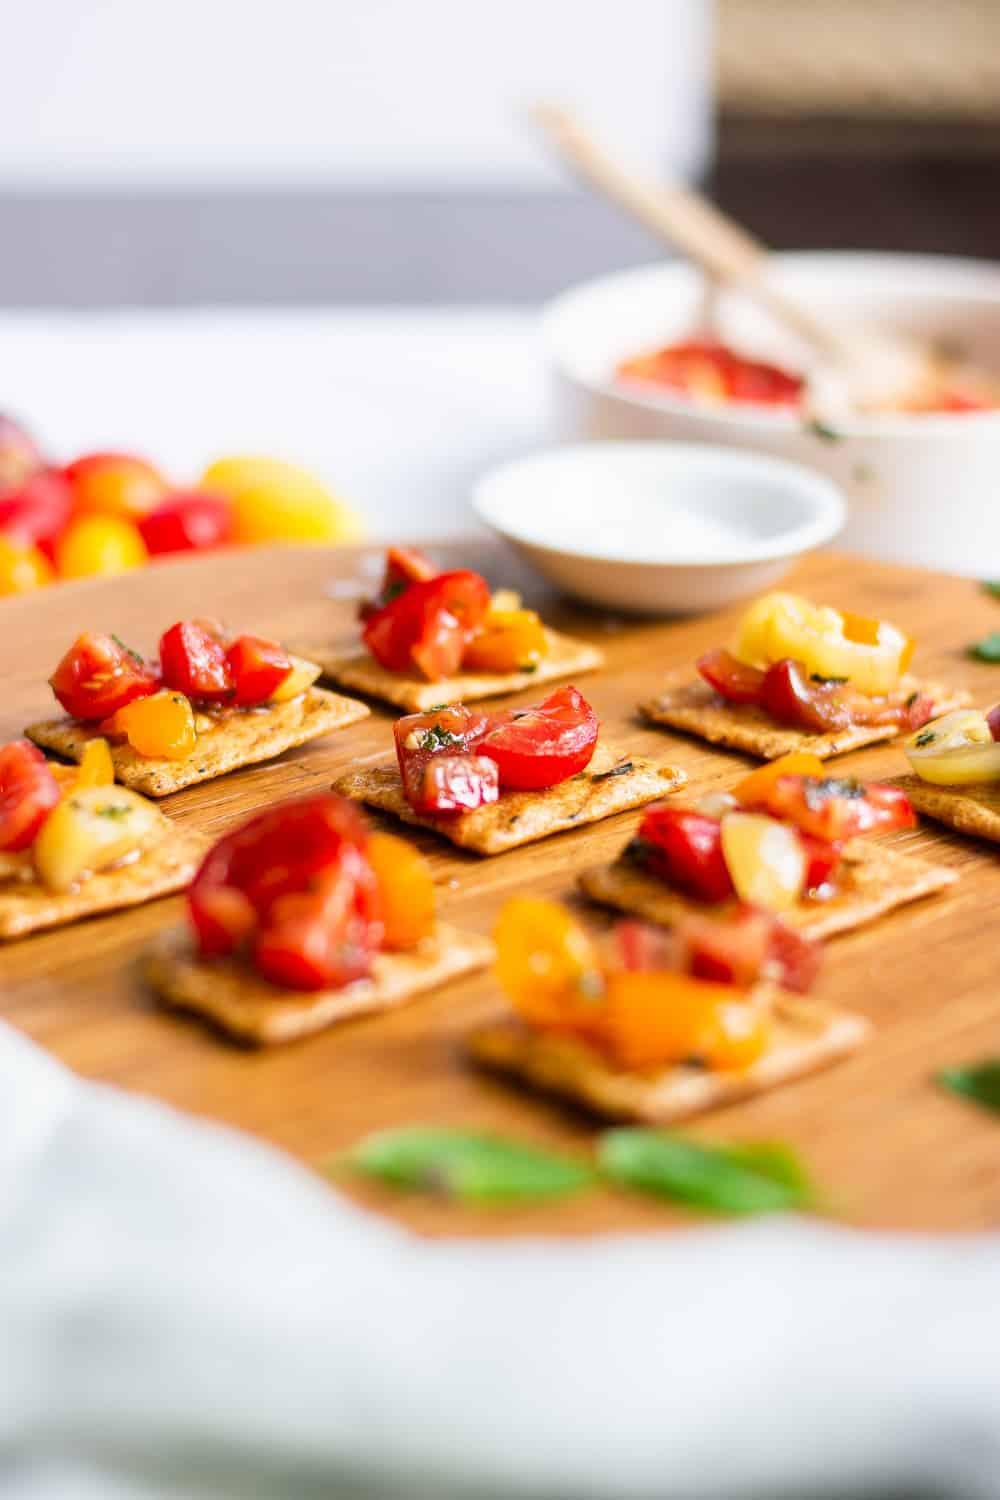 5-Minute Vegan Gluten Free Bruschetta without Bread